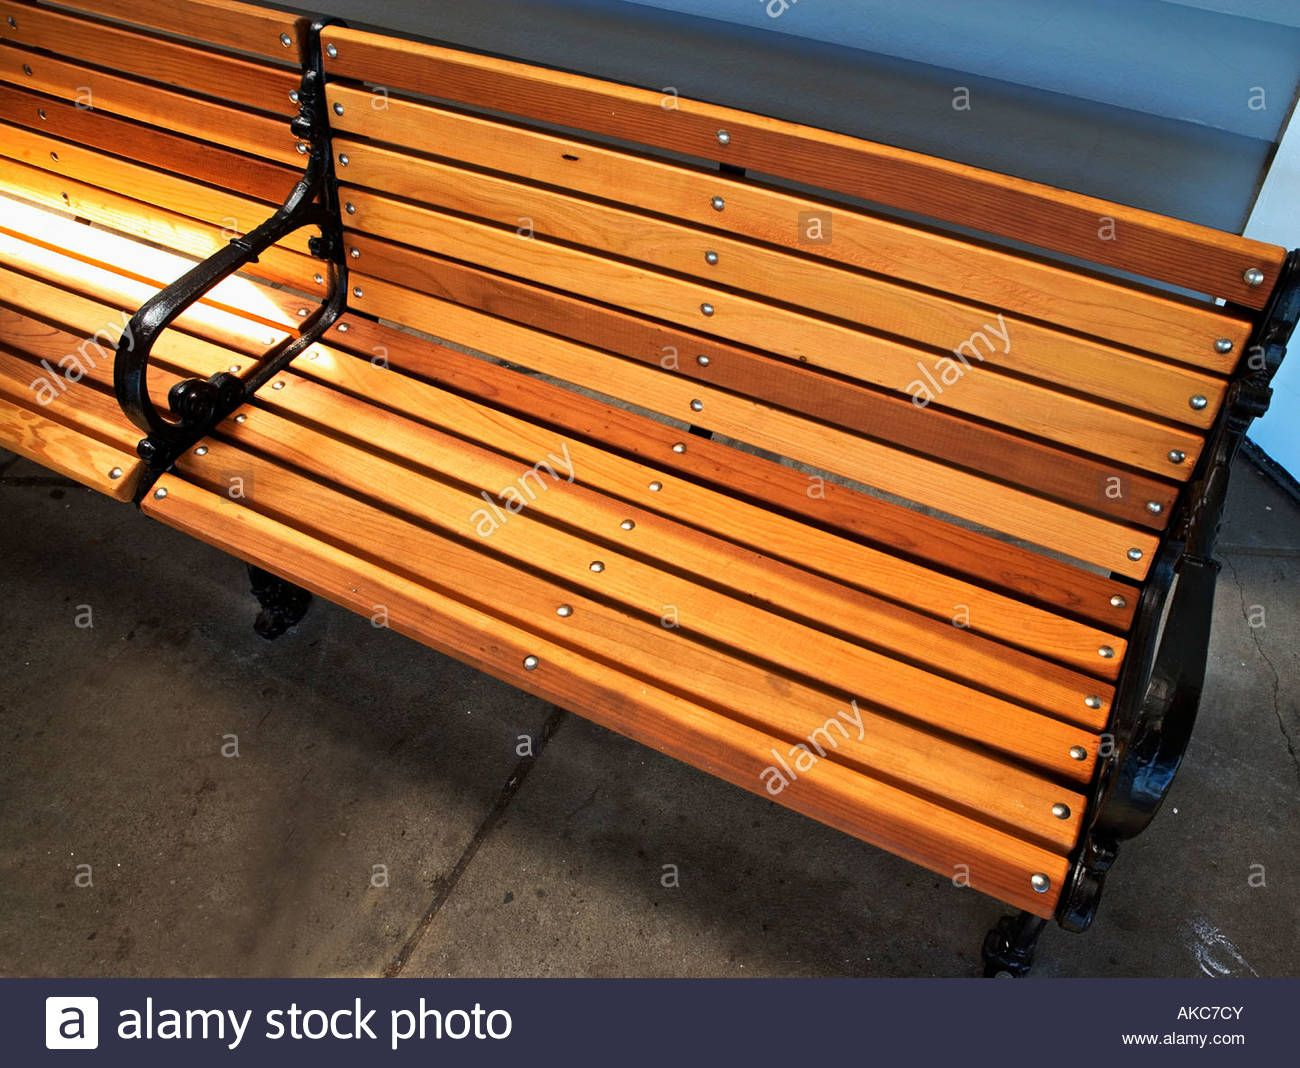 128 Reference Of Park Bench Wood Replacement In 2020 Wooden Park Bench Wooden Bench Wood Slats